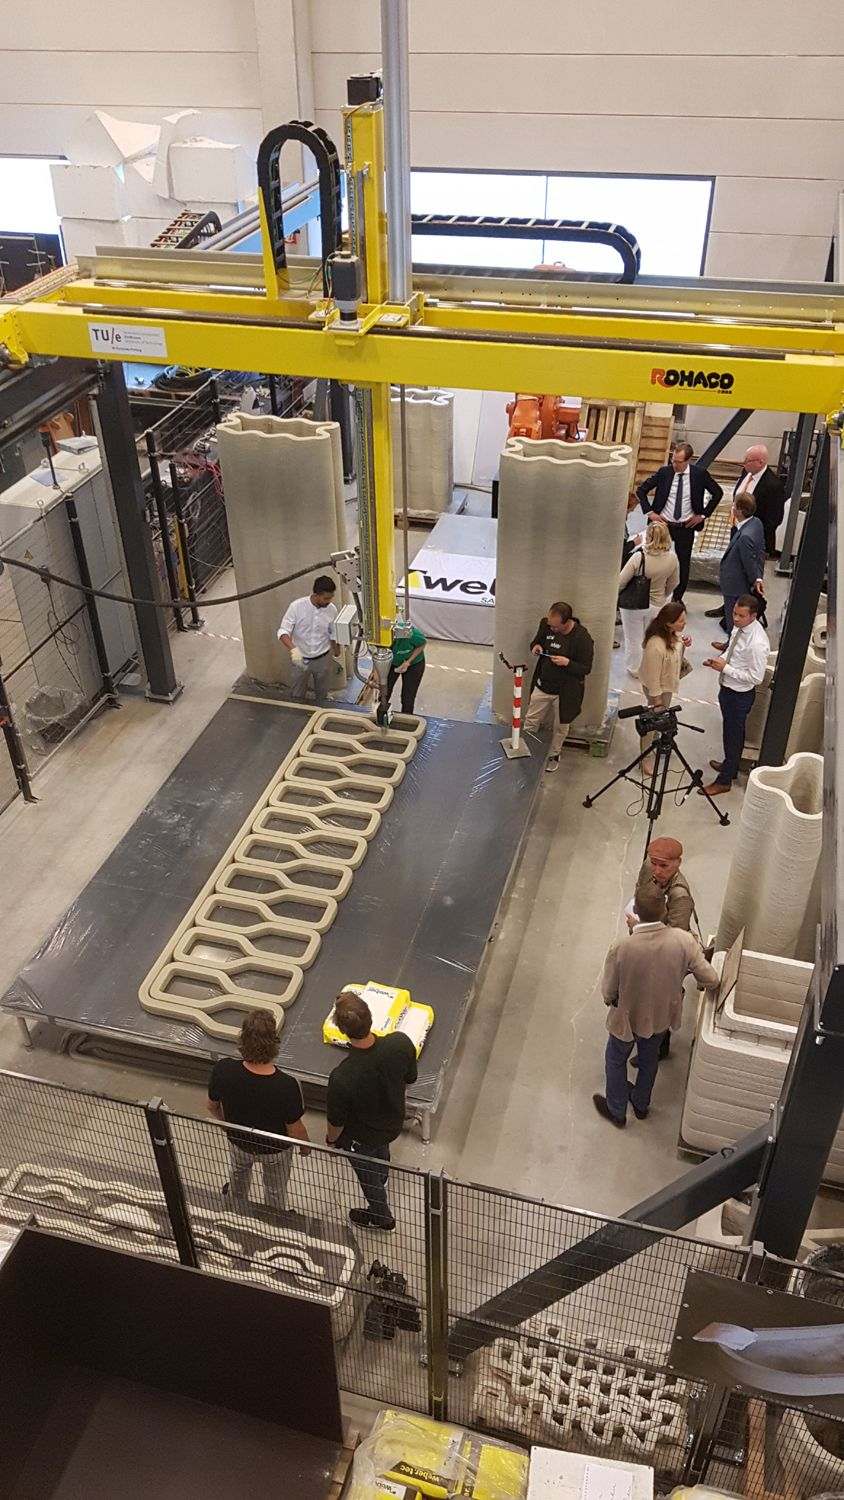 The TU Eindhoven concrete 3D printer printing the bridge. Photo via De Ingenieur.